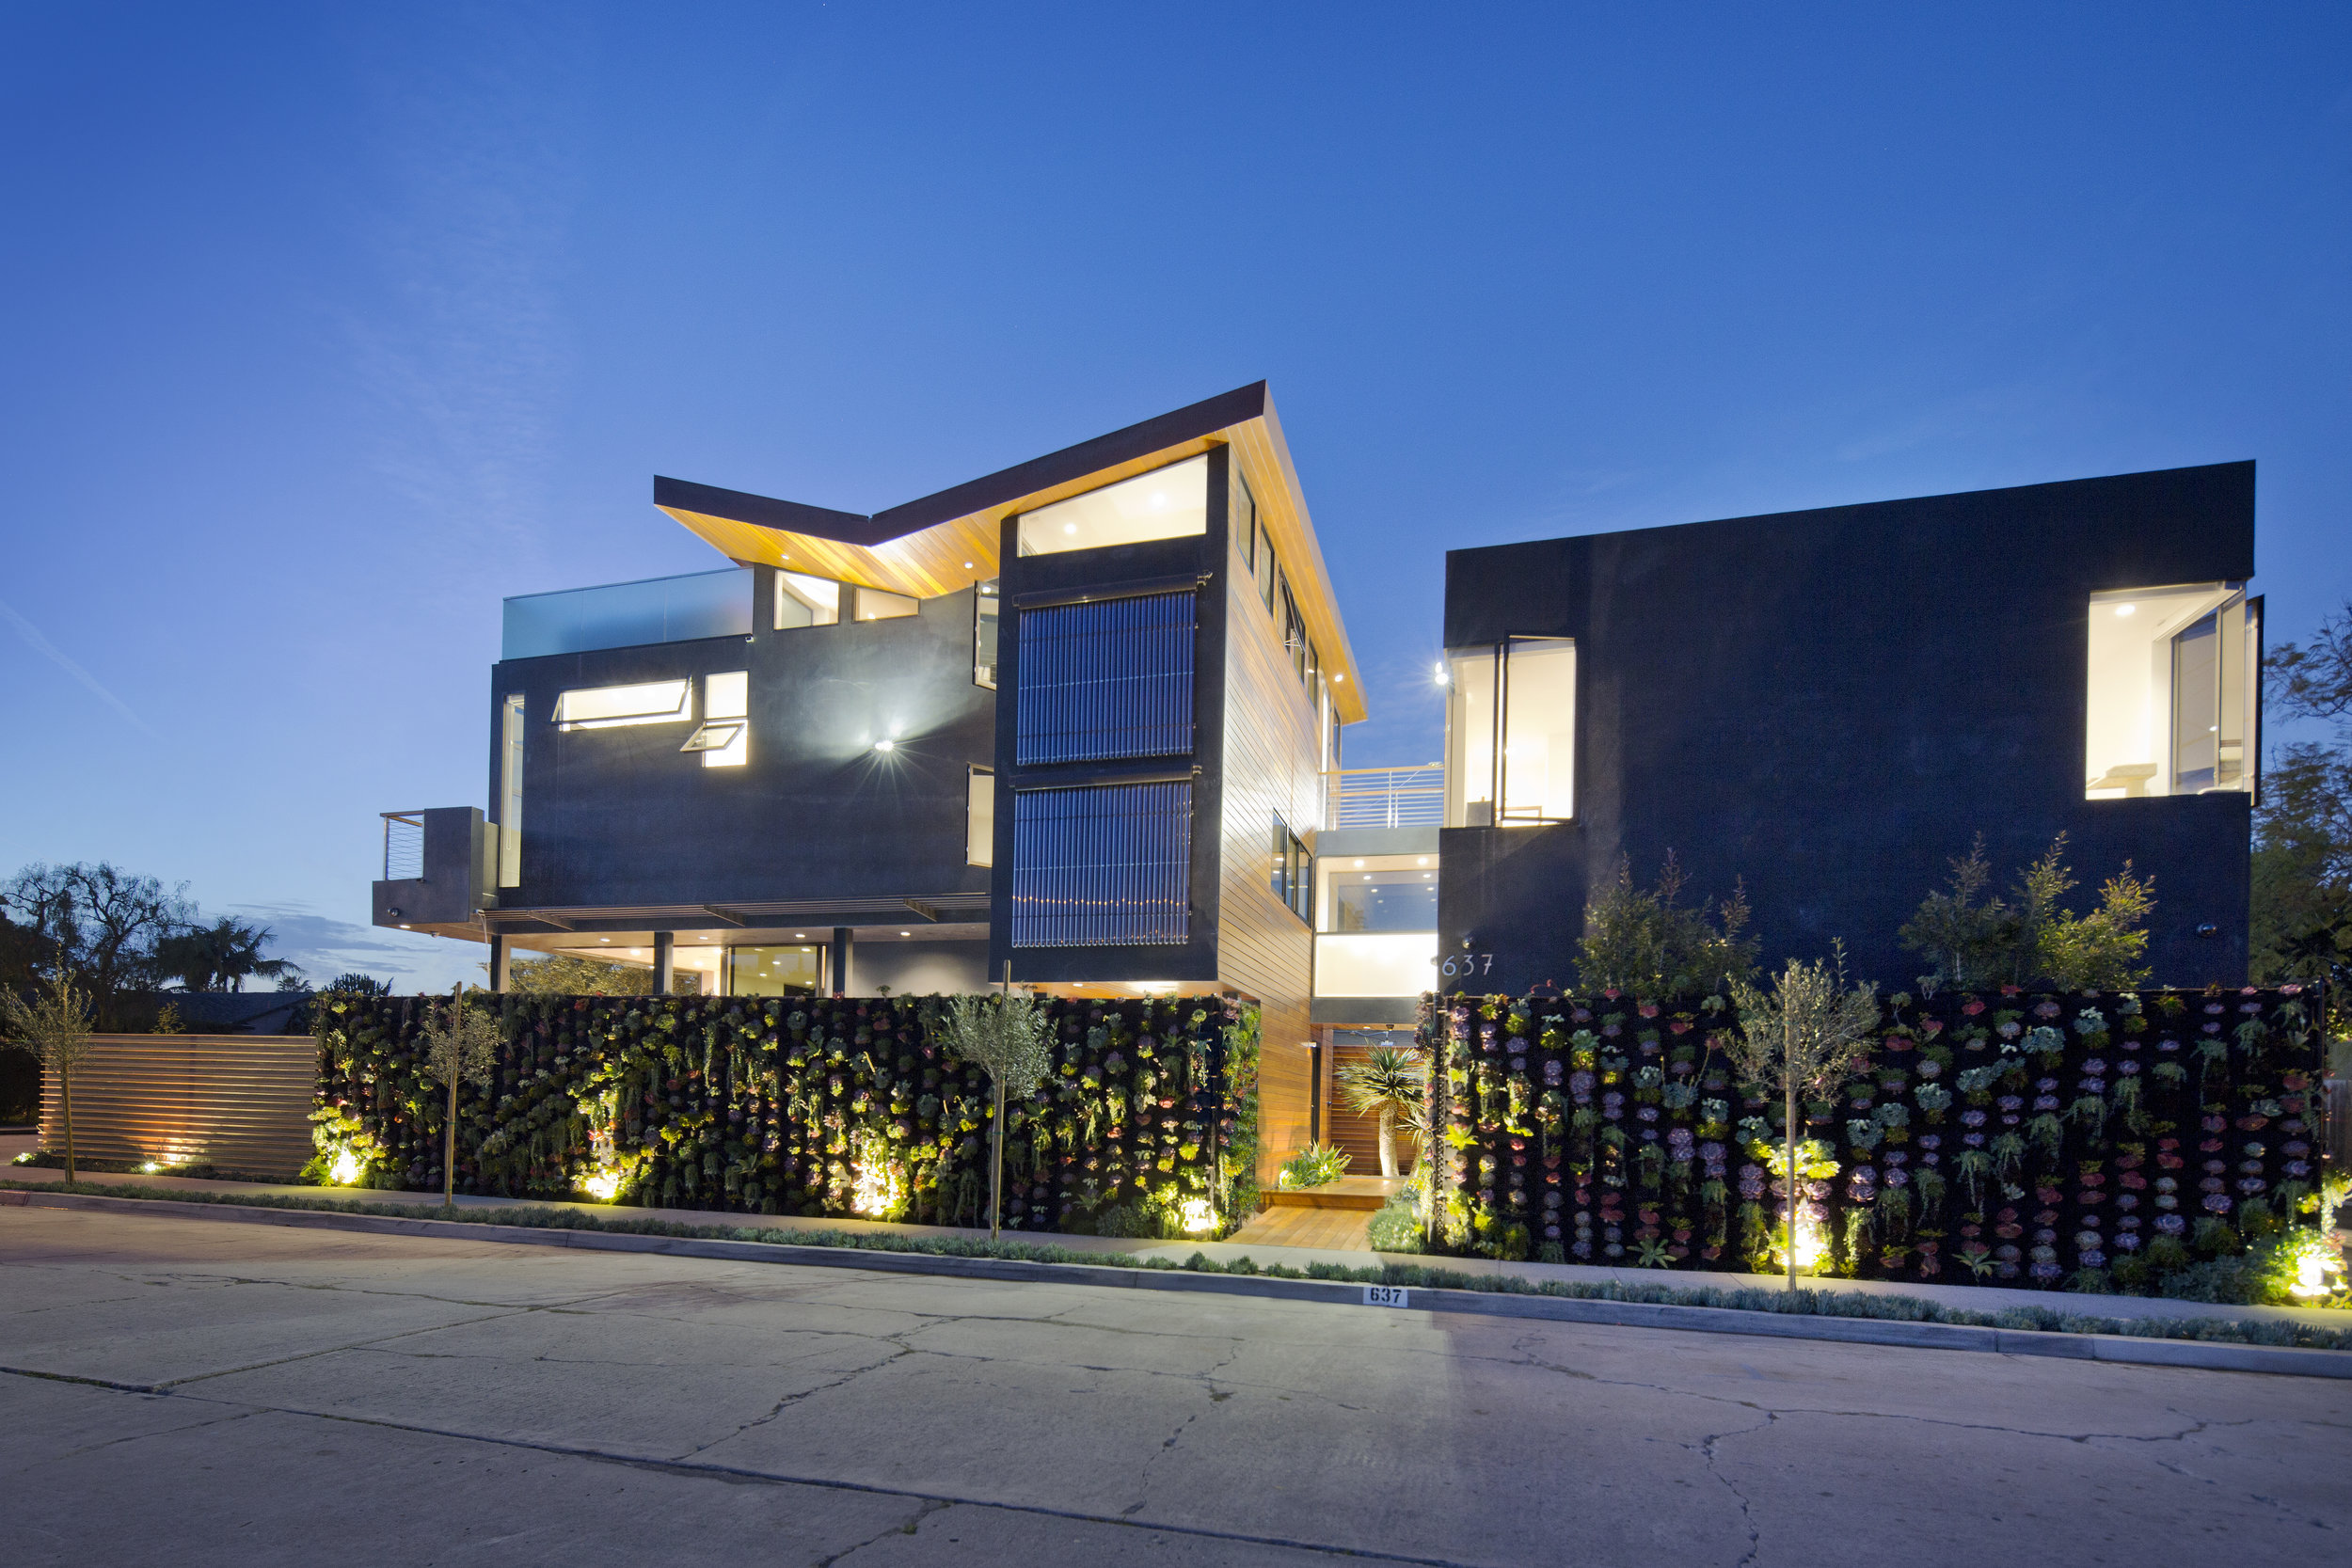 S.E.A.-Studio-Environmental-Architecture-David-Hertz-FAIA-Butterfly-House-Venice-Beach-California-sustainable-regenerative-restorative-green-design-renewable-energy-evacuated-tube-solar-collector-residential-green-wall-stormwater-natural-ventilation-1.jpg